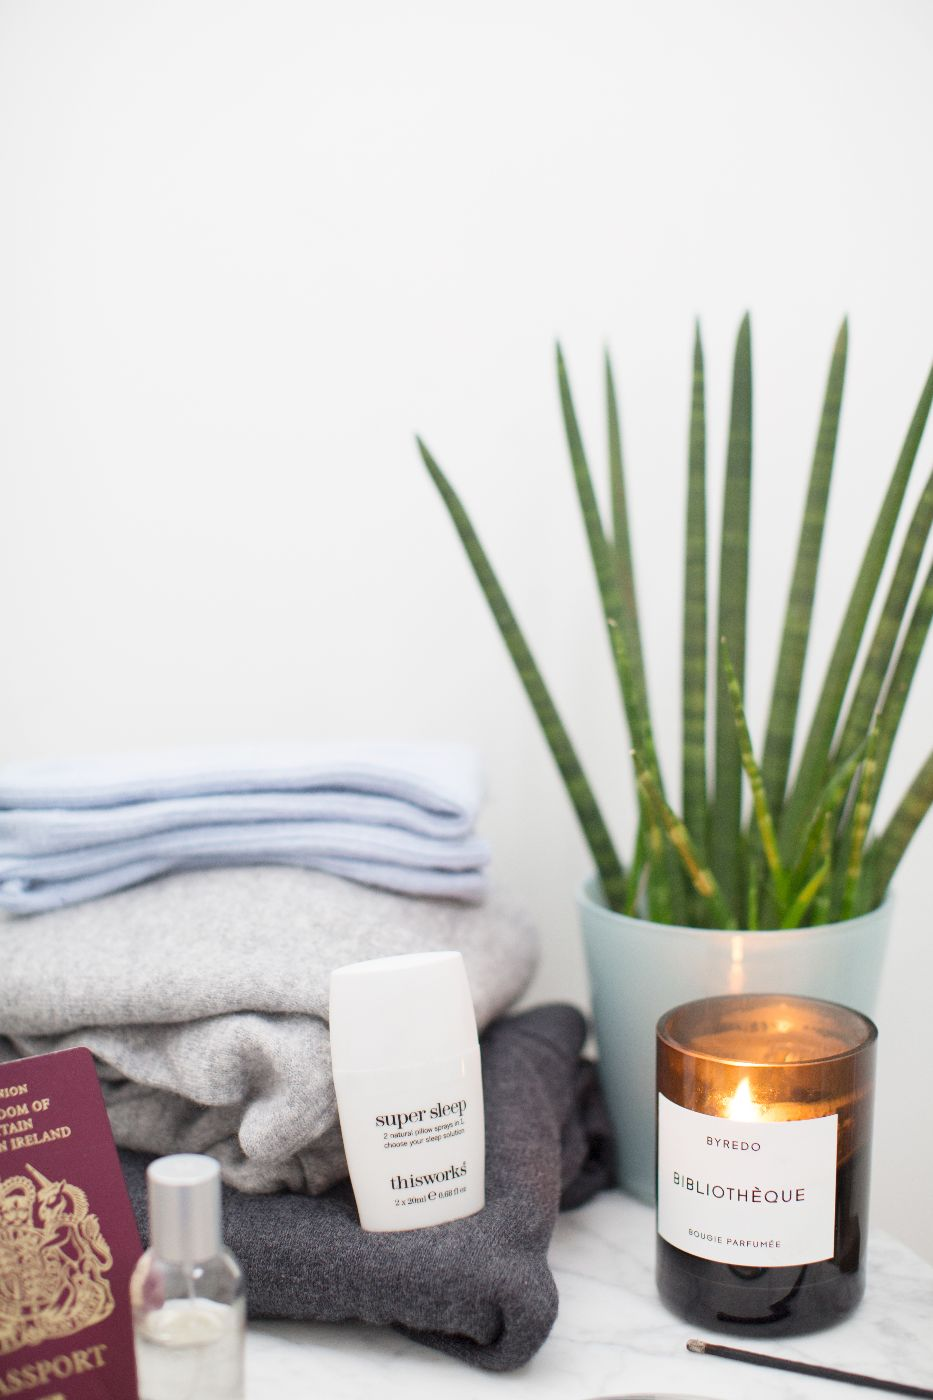 theannaedit-home-comforts-whilst-travelling-cashmere-sex-and-the-city-april-2017-3